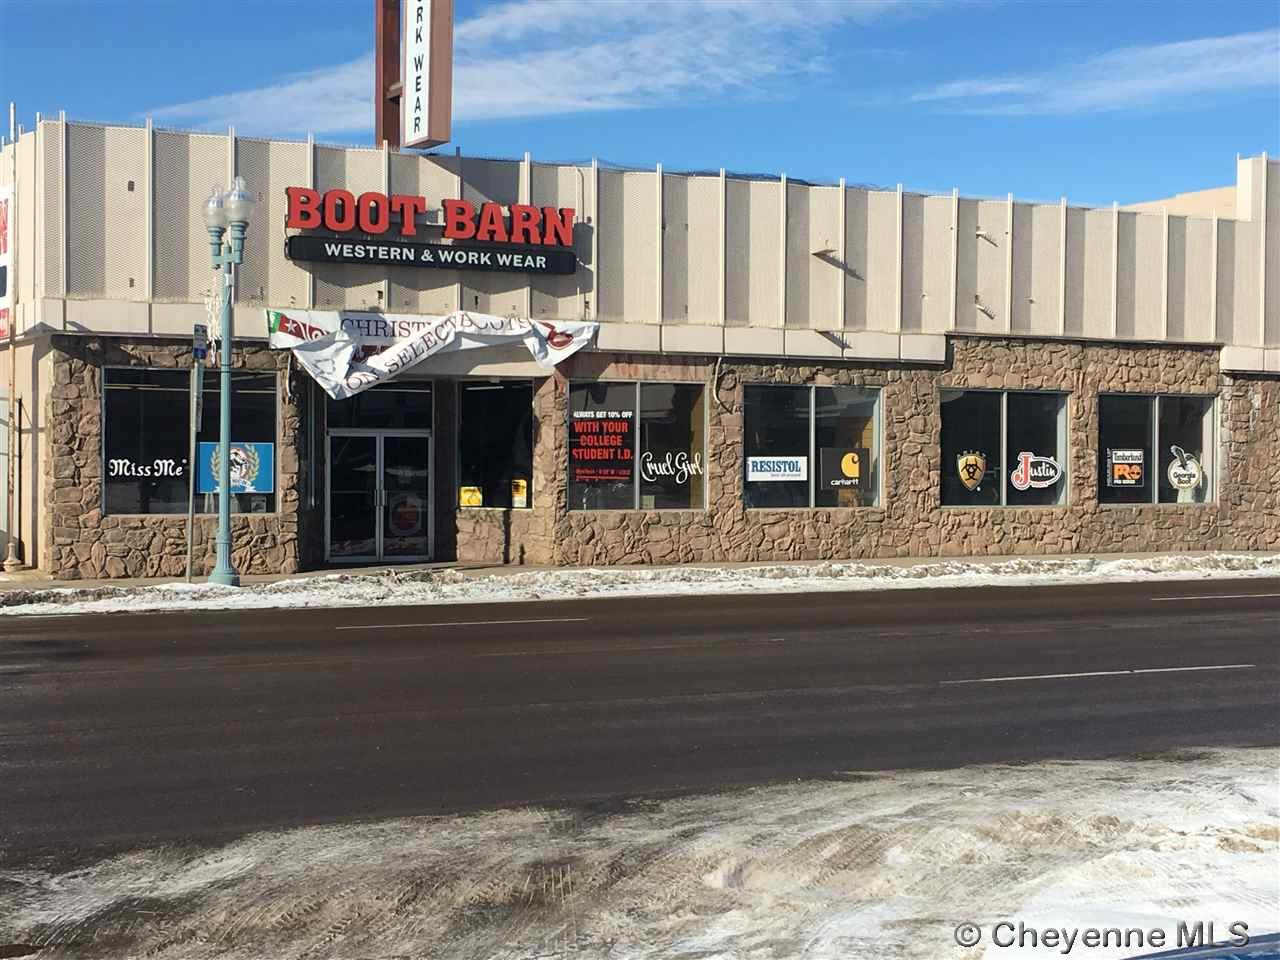 Commercial for Sale at 158 N 3rd St 158 N 3rd St Laramie, Wyoming 82070 United States